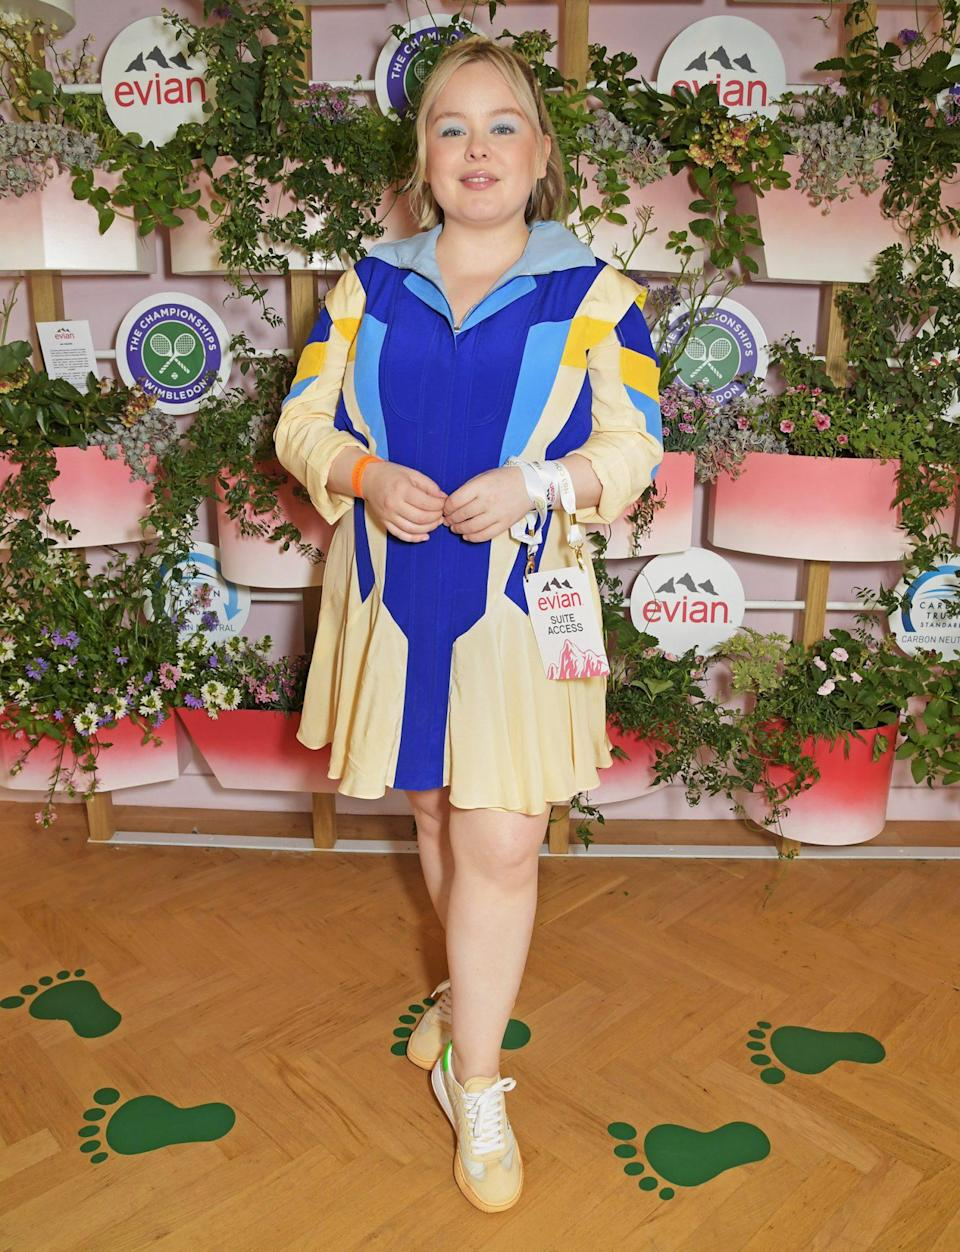 <p>Nicola Coughlan poses in evian's VIP suite during day two of Wimbledon in London on June 29.</p>